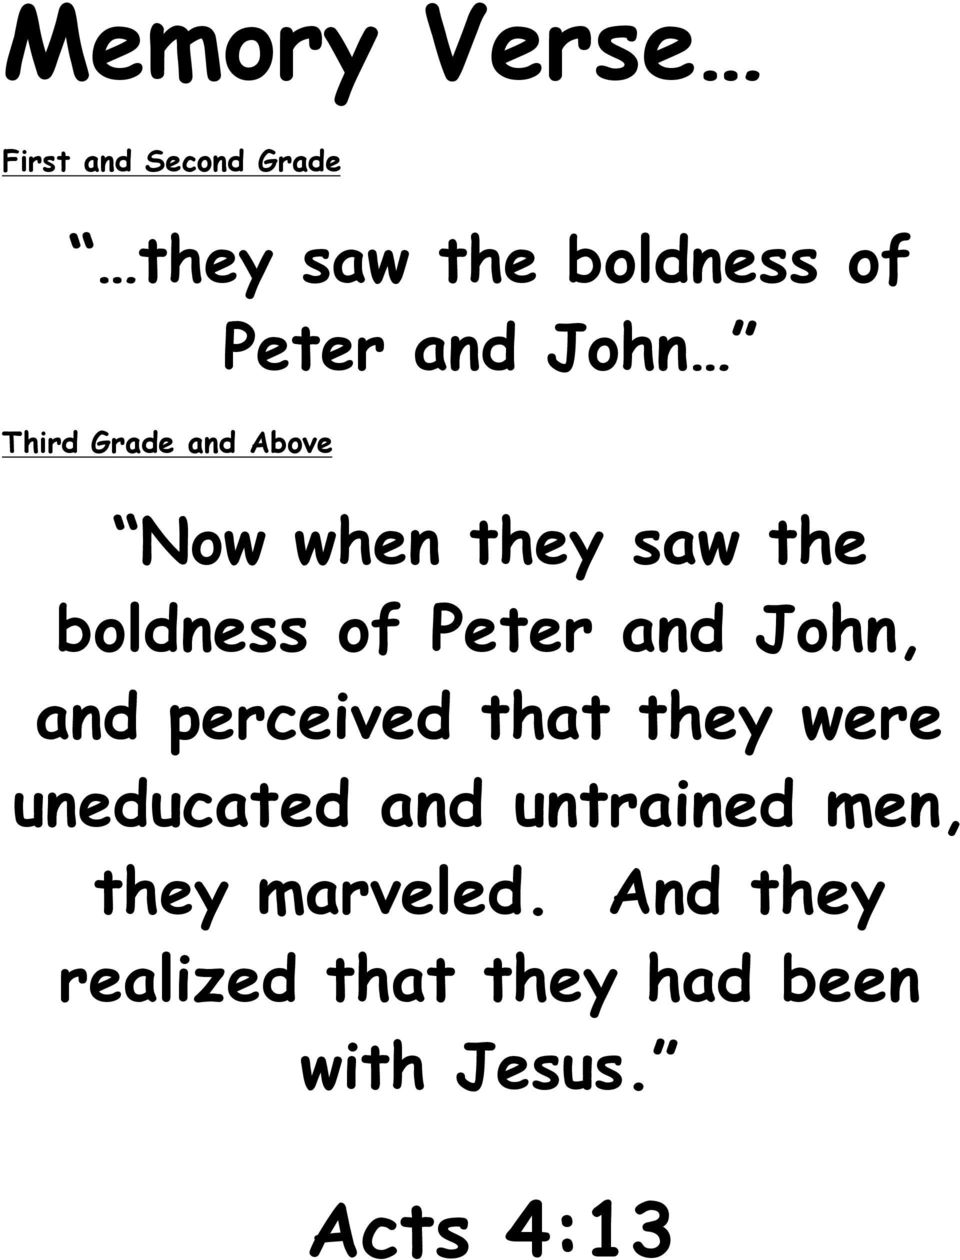 Peter and John, and perceived that they were uneducated and untrained